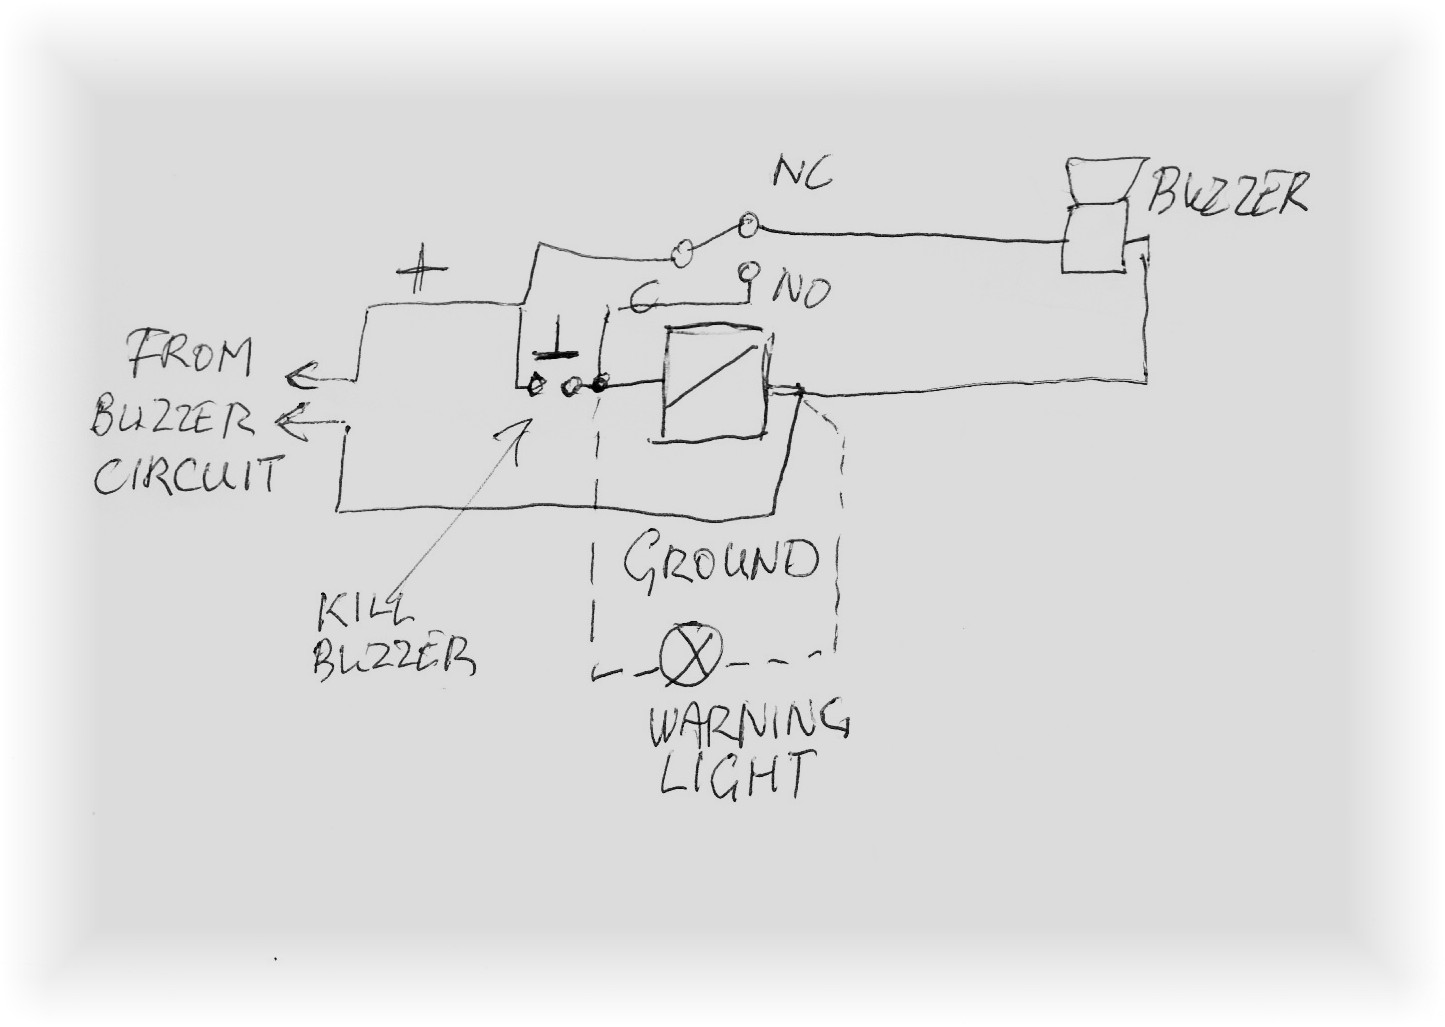 buzzer wiring diagram